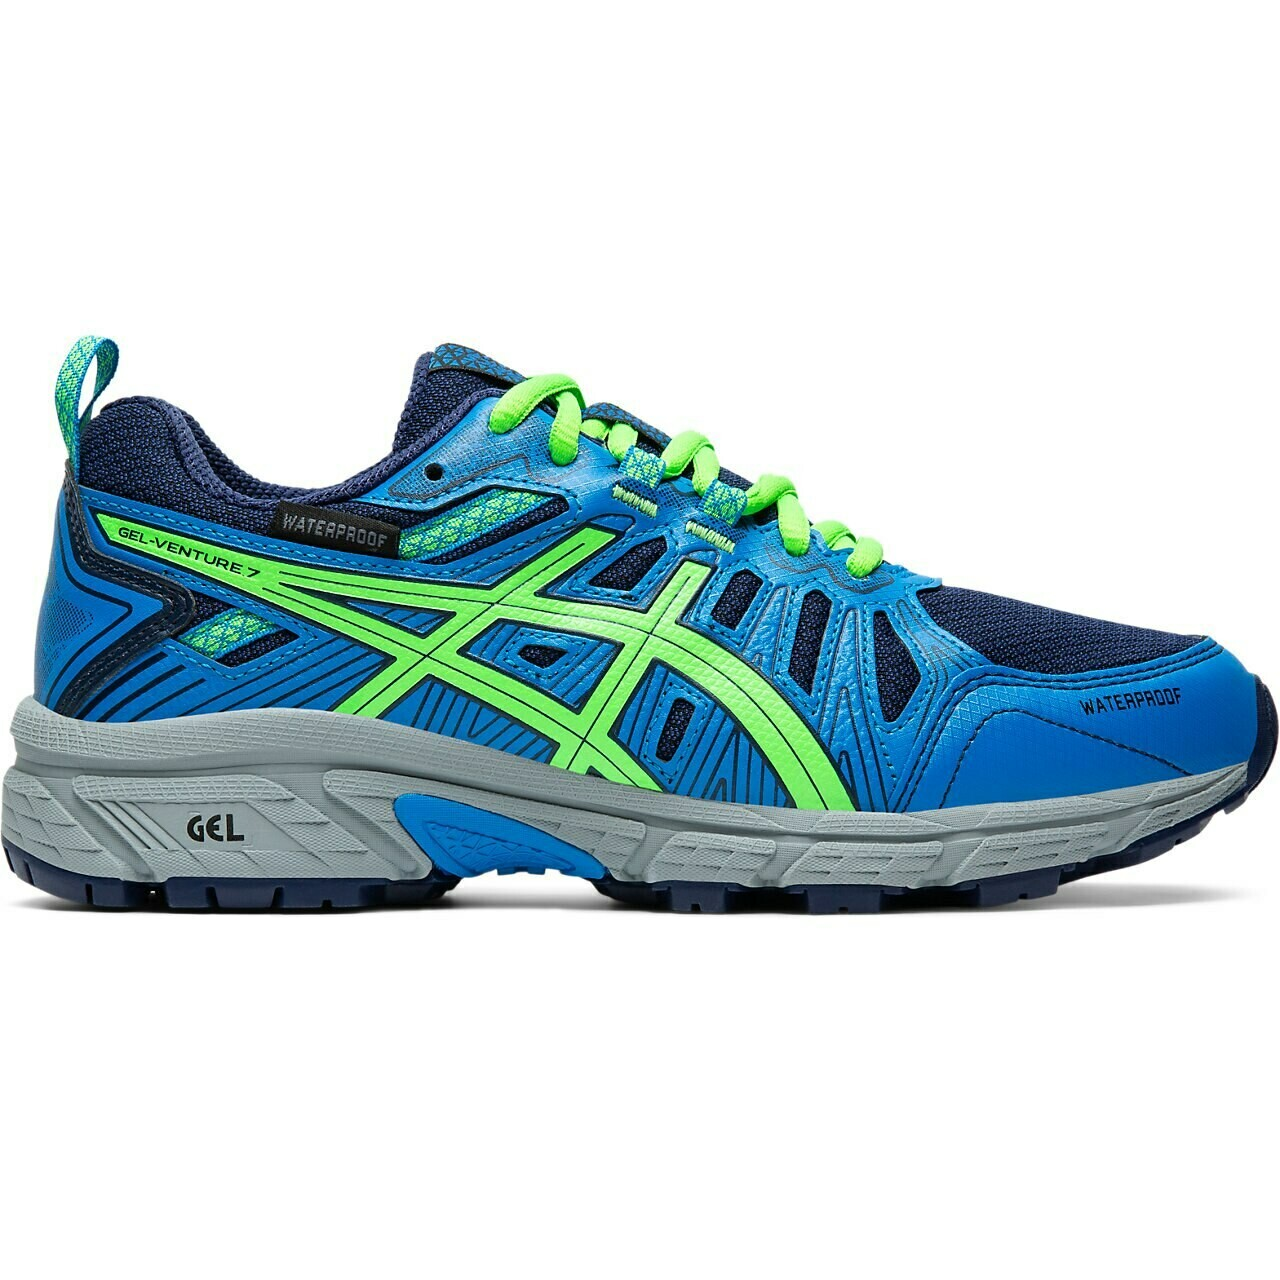 Asics Gel Venture 4 - Waterproof